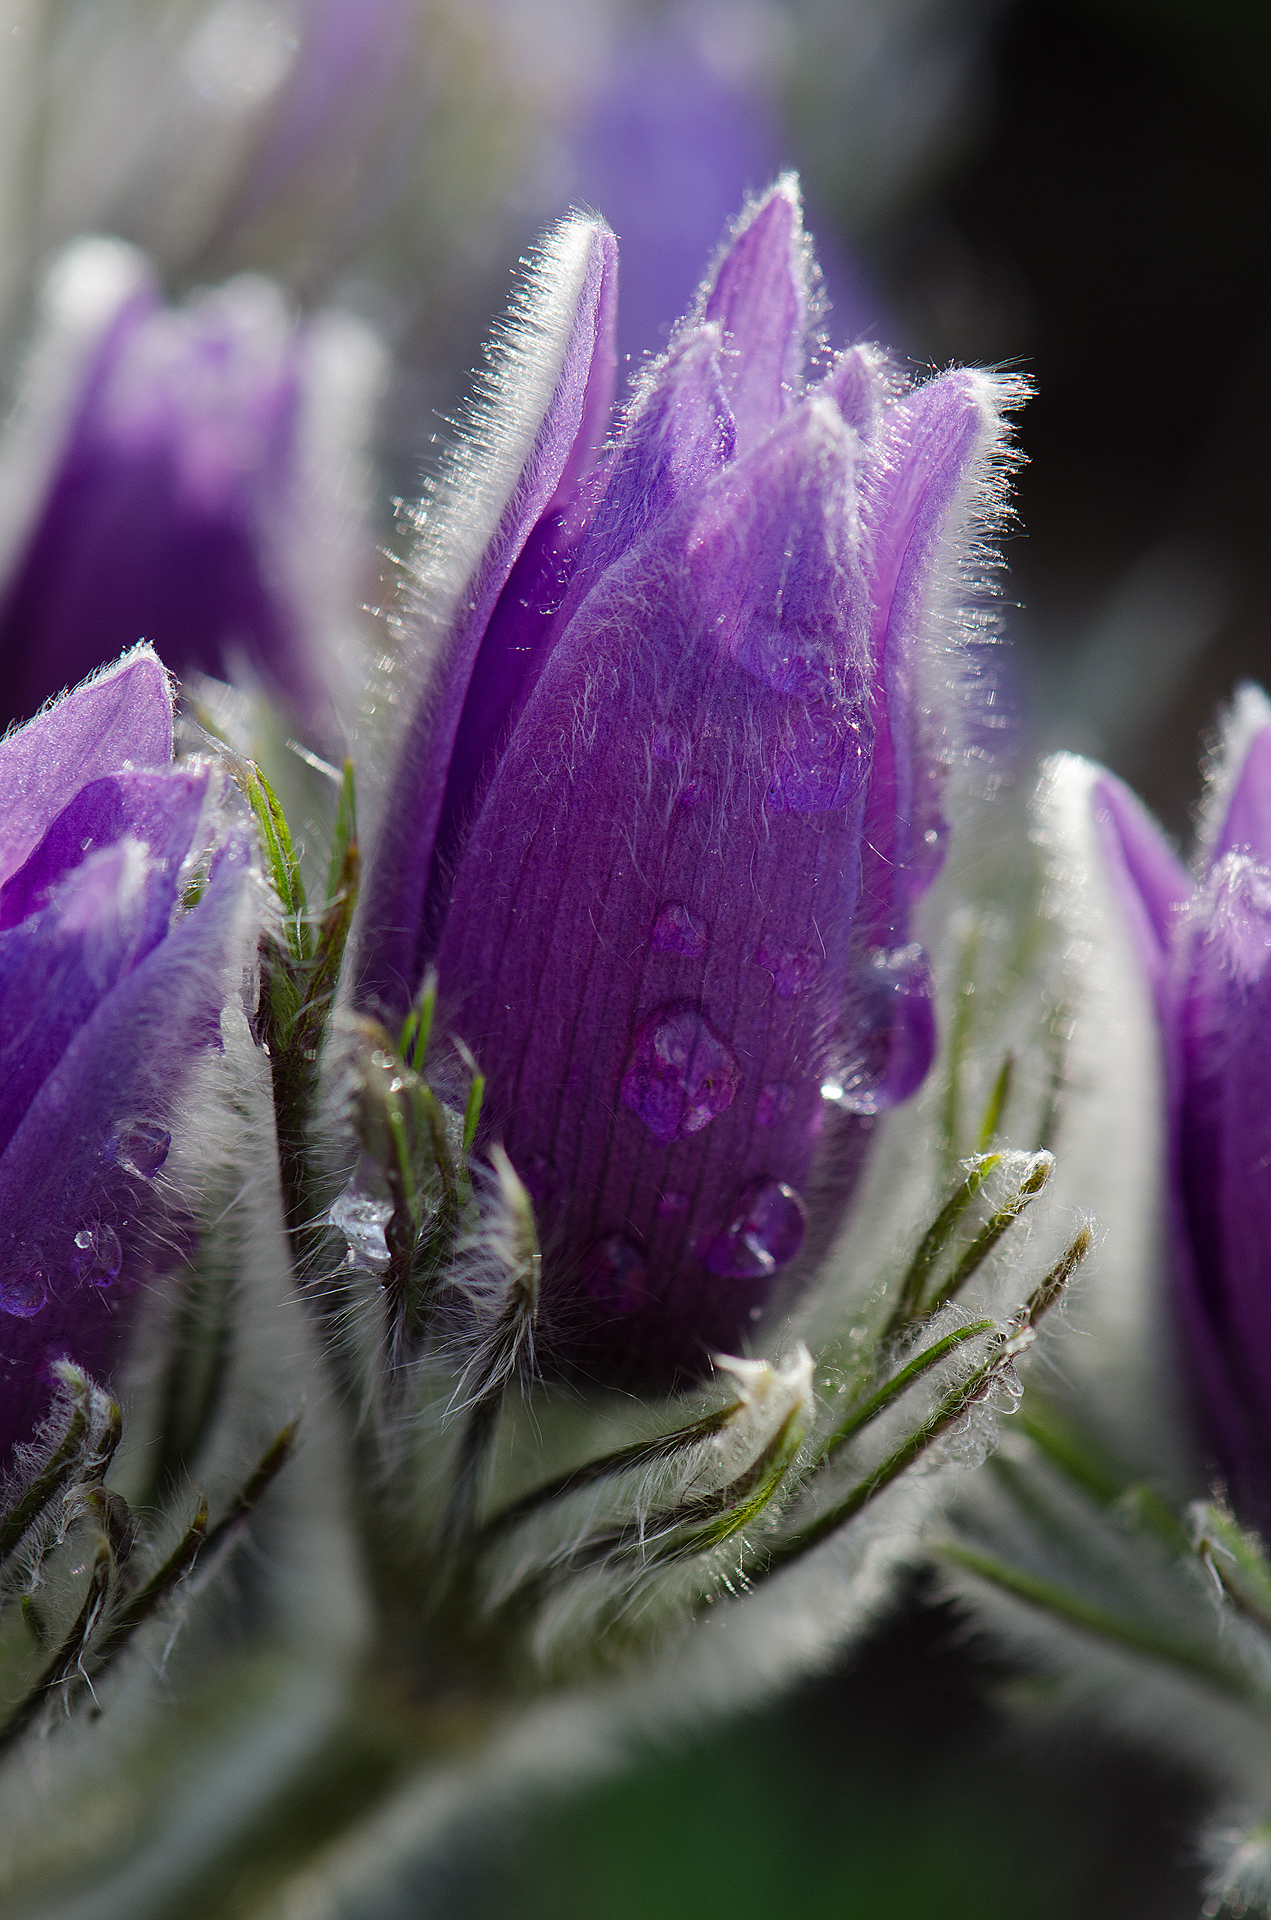 Pulsatilla bud after rain